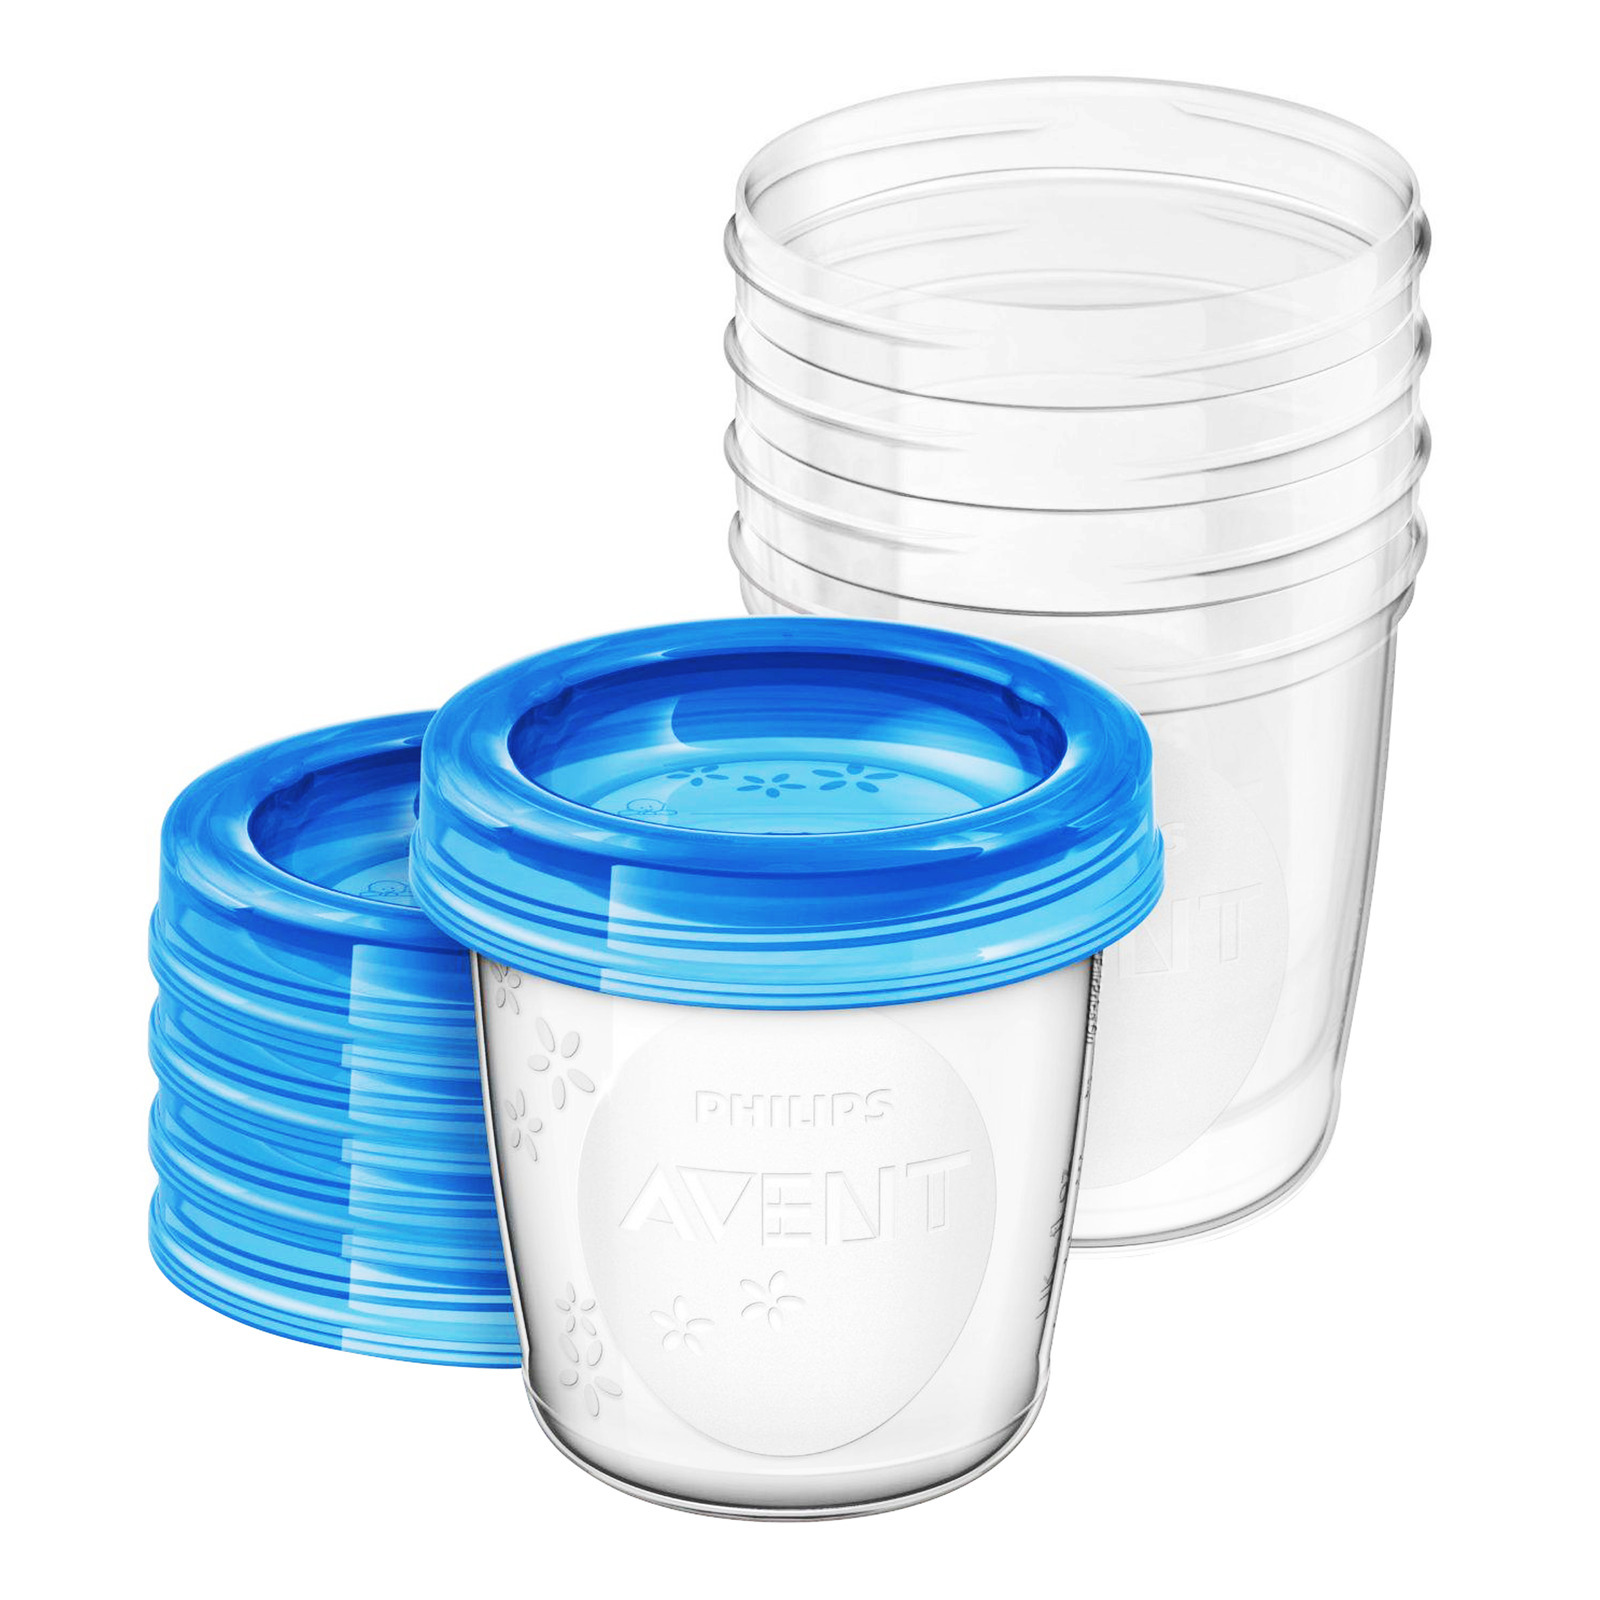 Philips Avent Storage Cups - Food